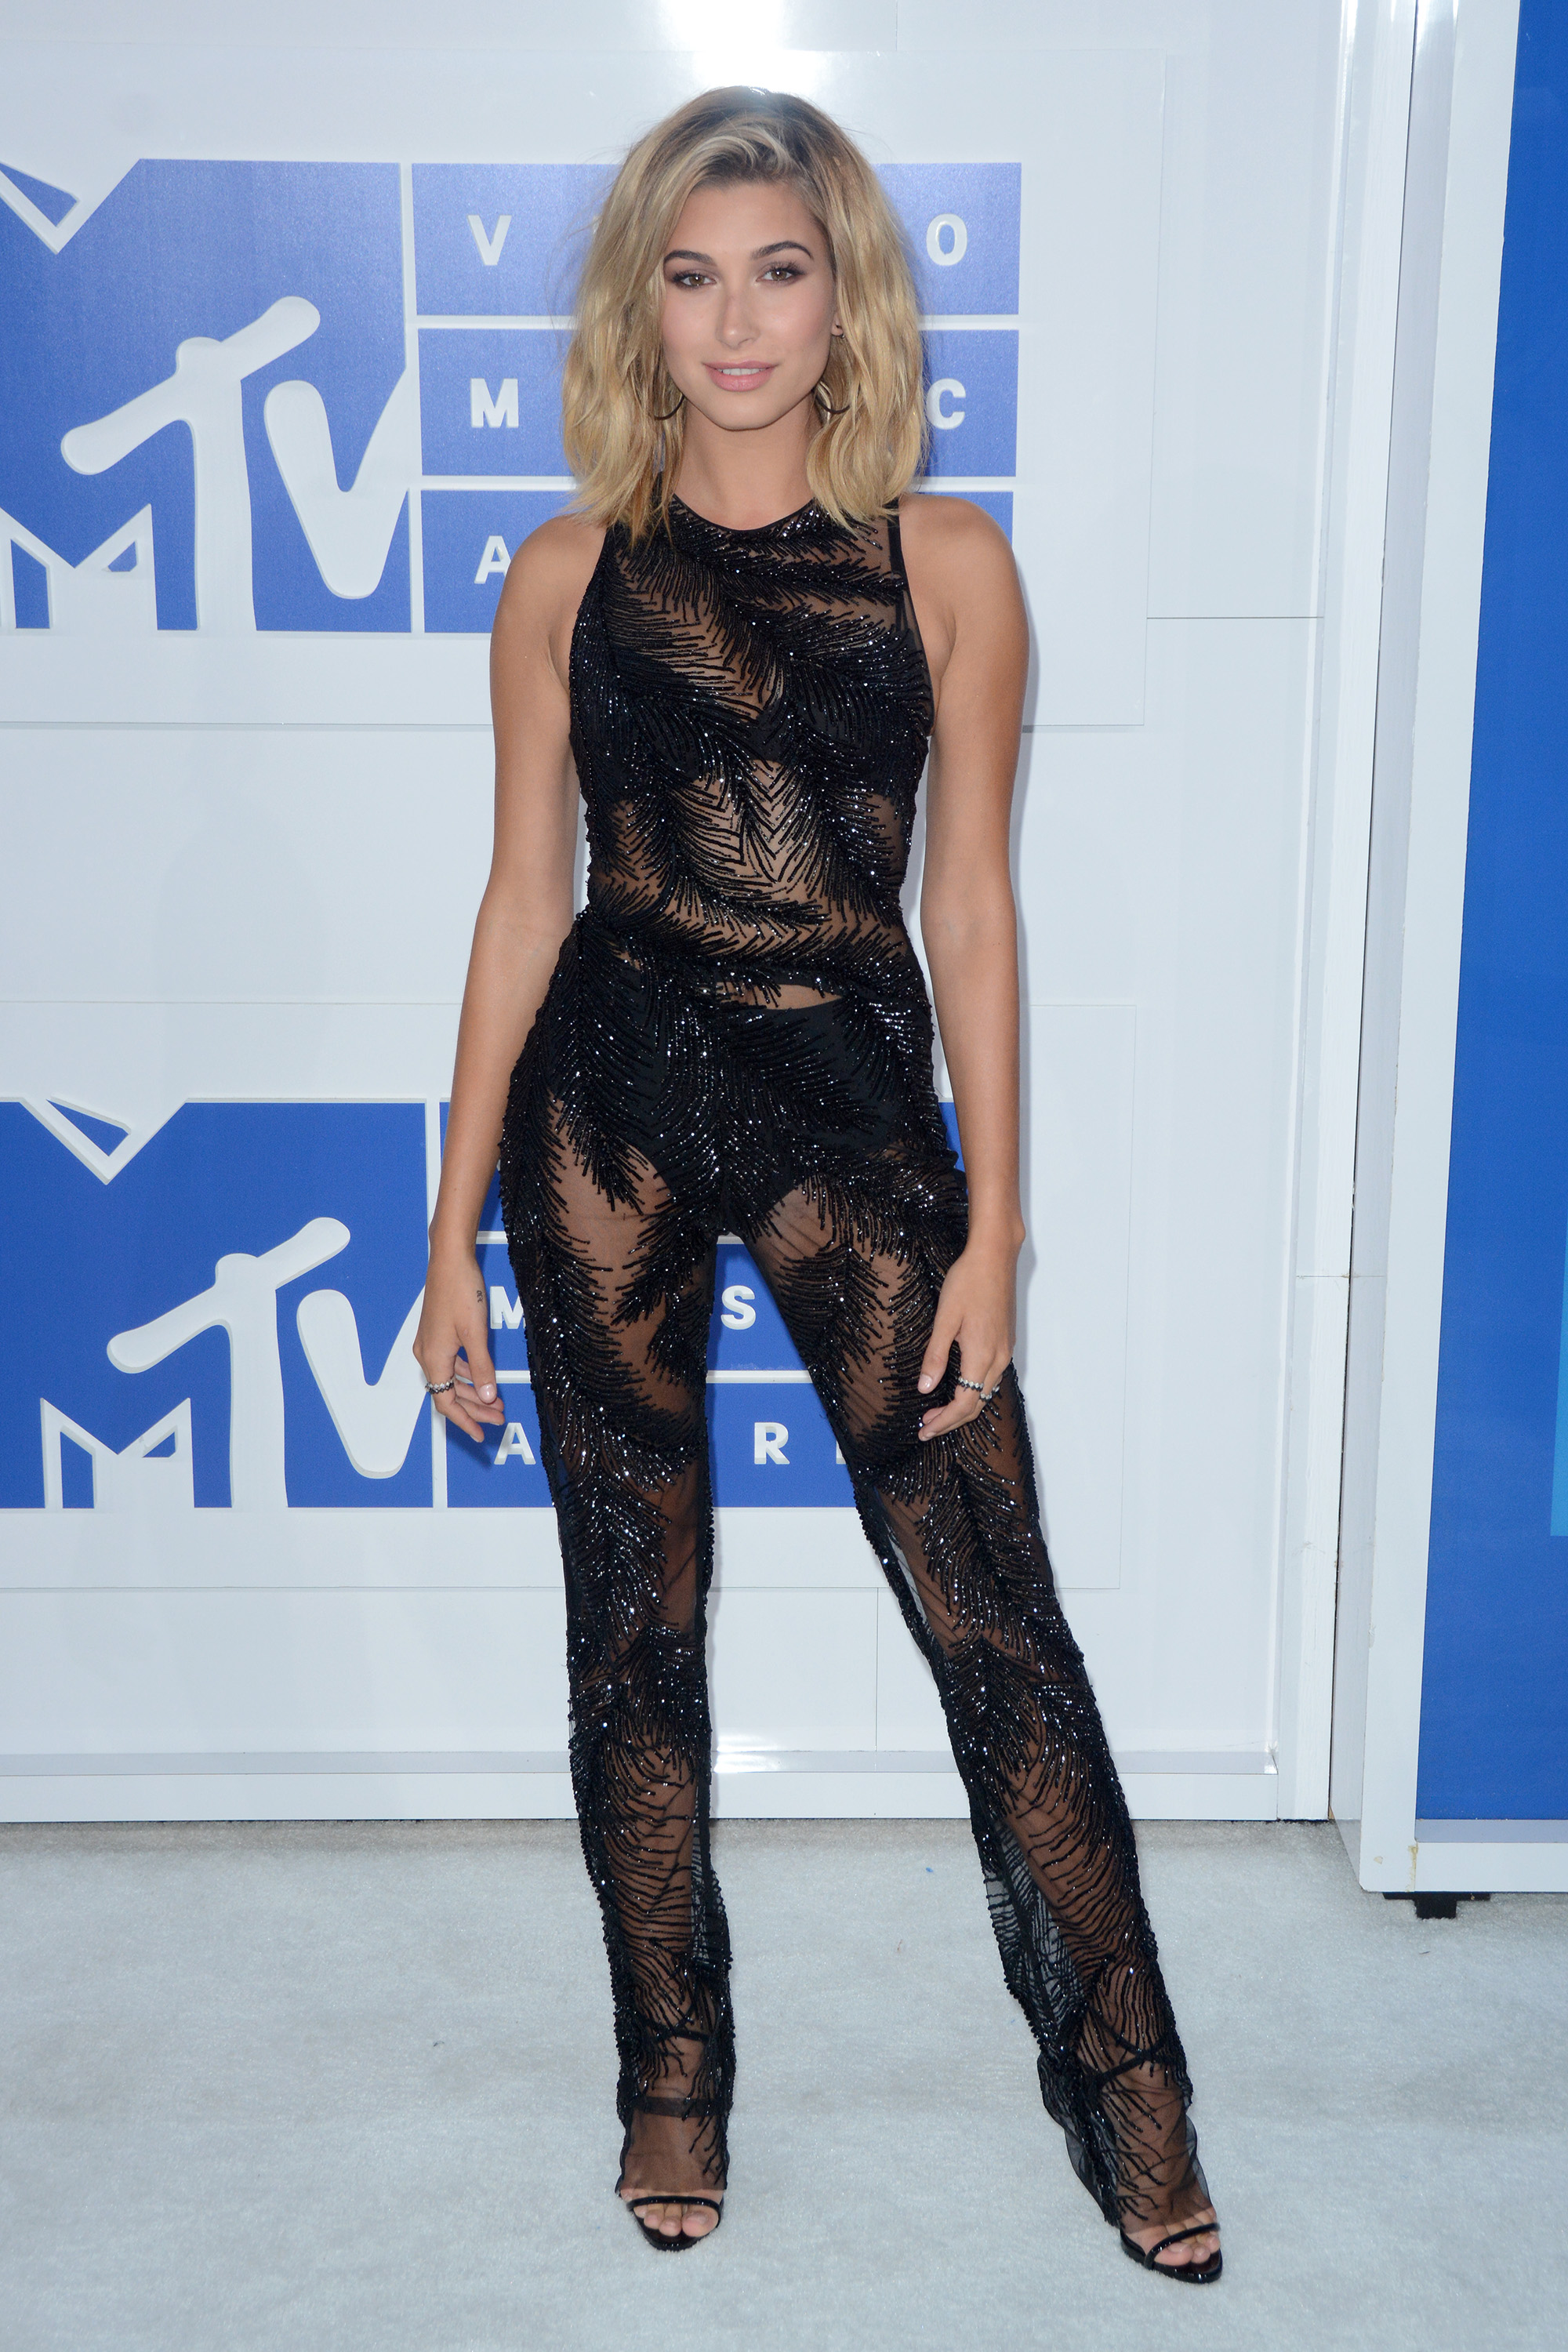 2016 MTV Video Music Awards - Red Carpet Arrivals                                    Featuring: Hailey Baldwin                  Where: New York, New York, United States                  When: 29 Aug 2016                  Credit: Ivan Nikolov/WENN.com